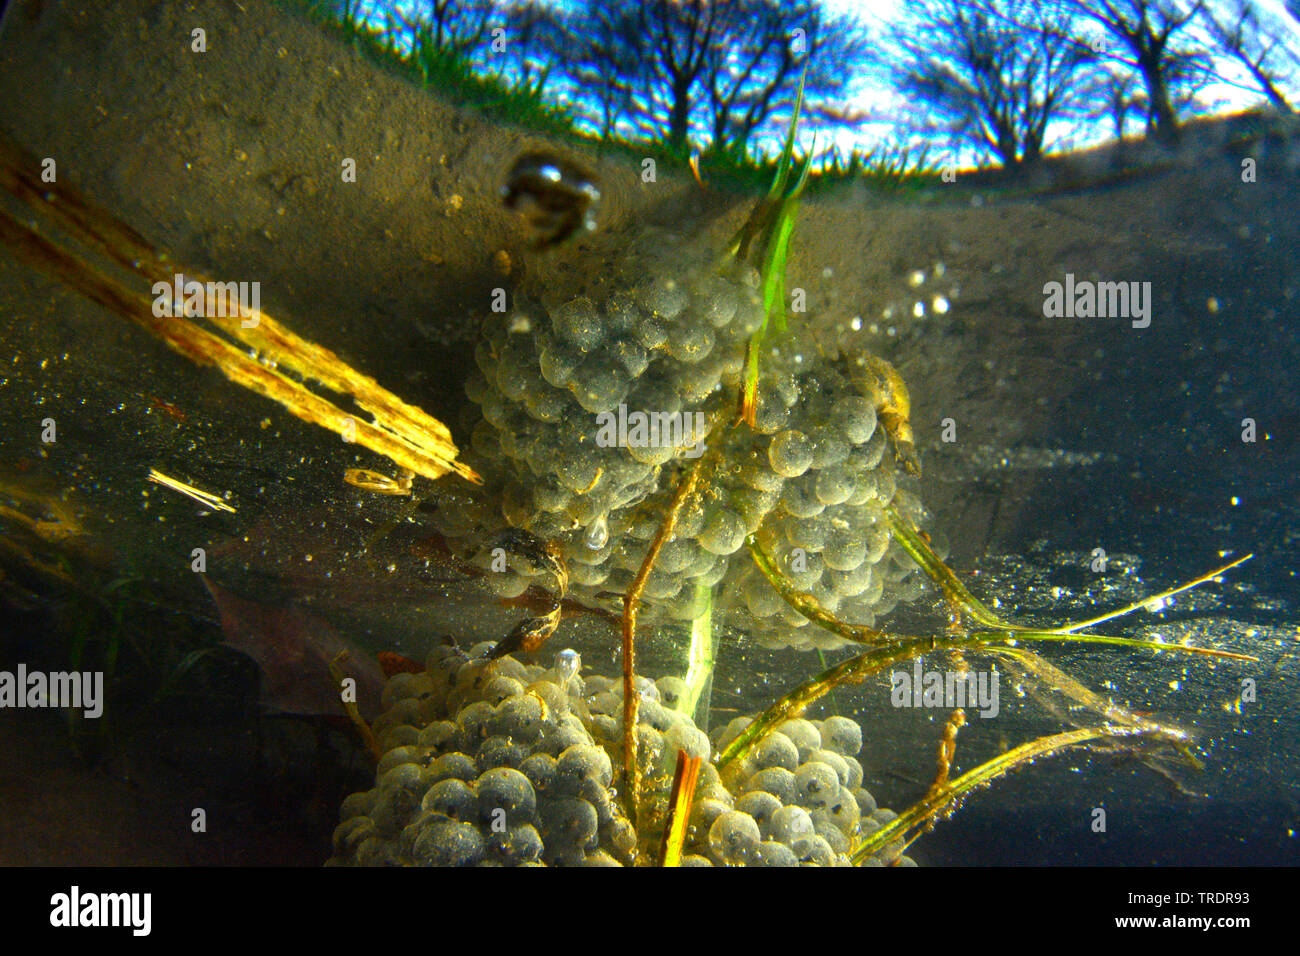 common frog, grass frog (Rana temporaria), frogspawn under water, Hungary - Stock Image